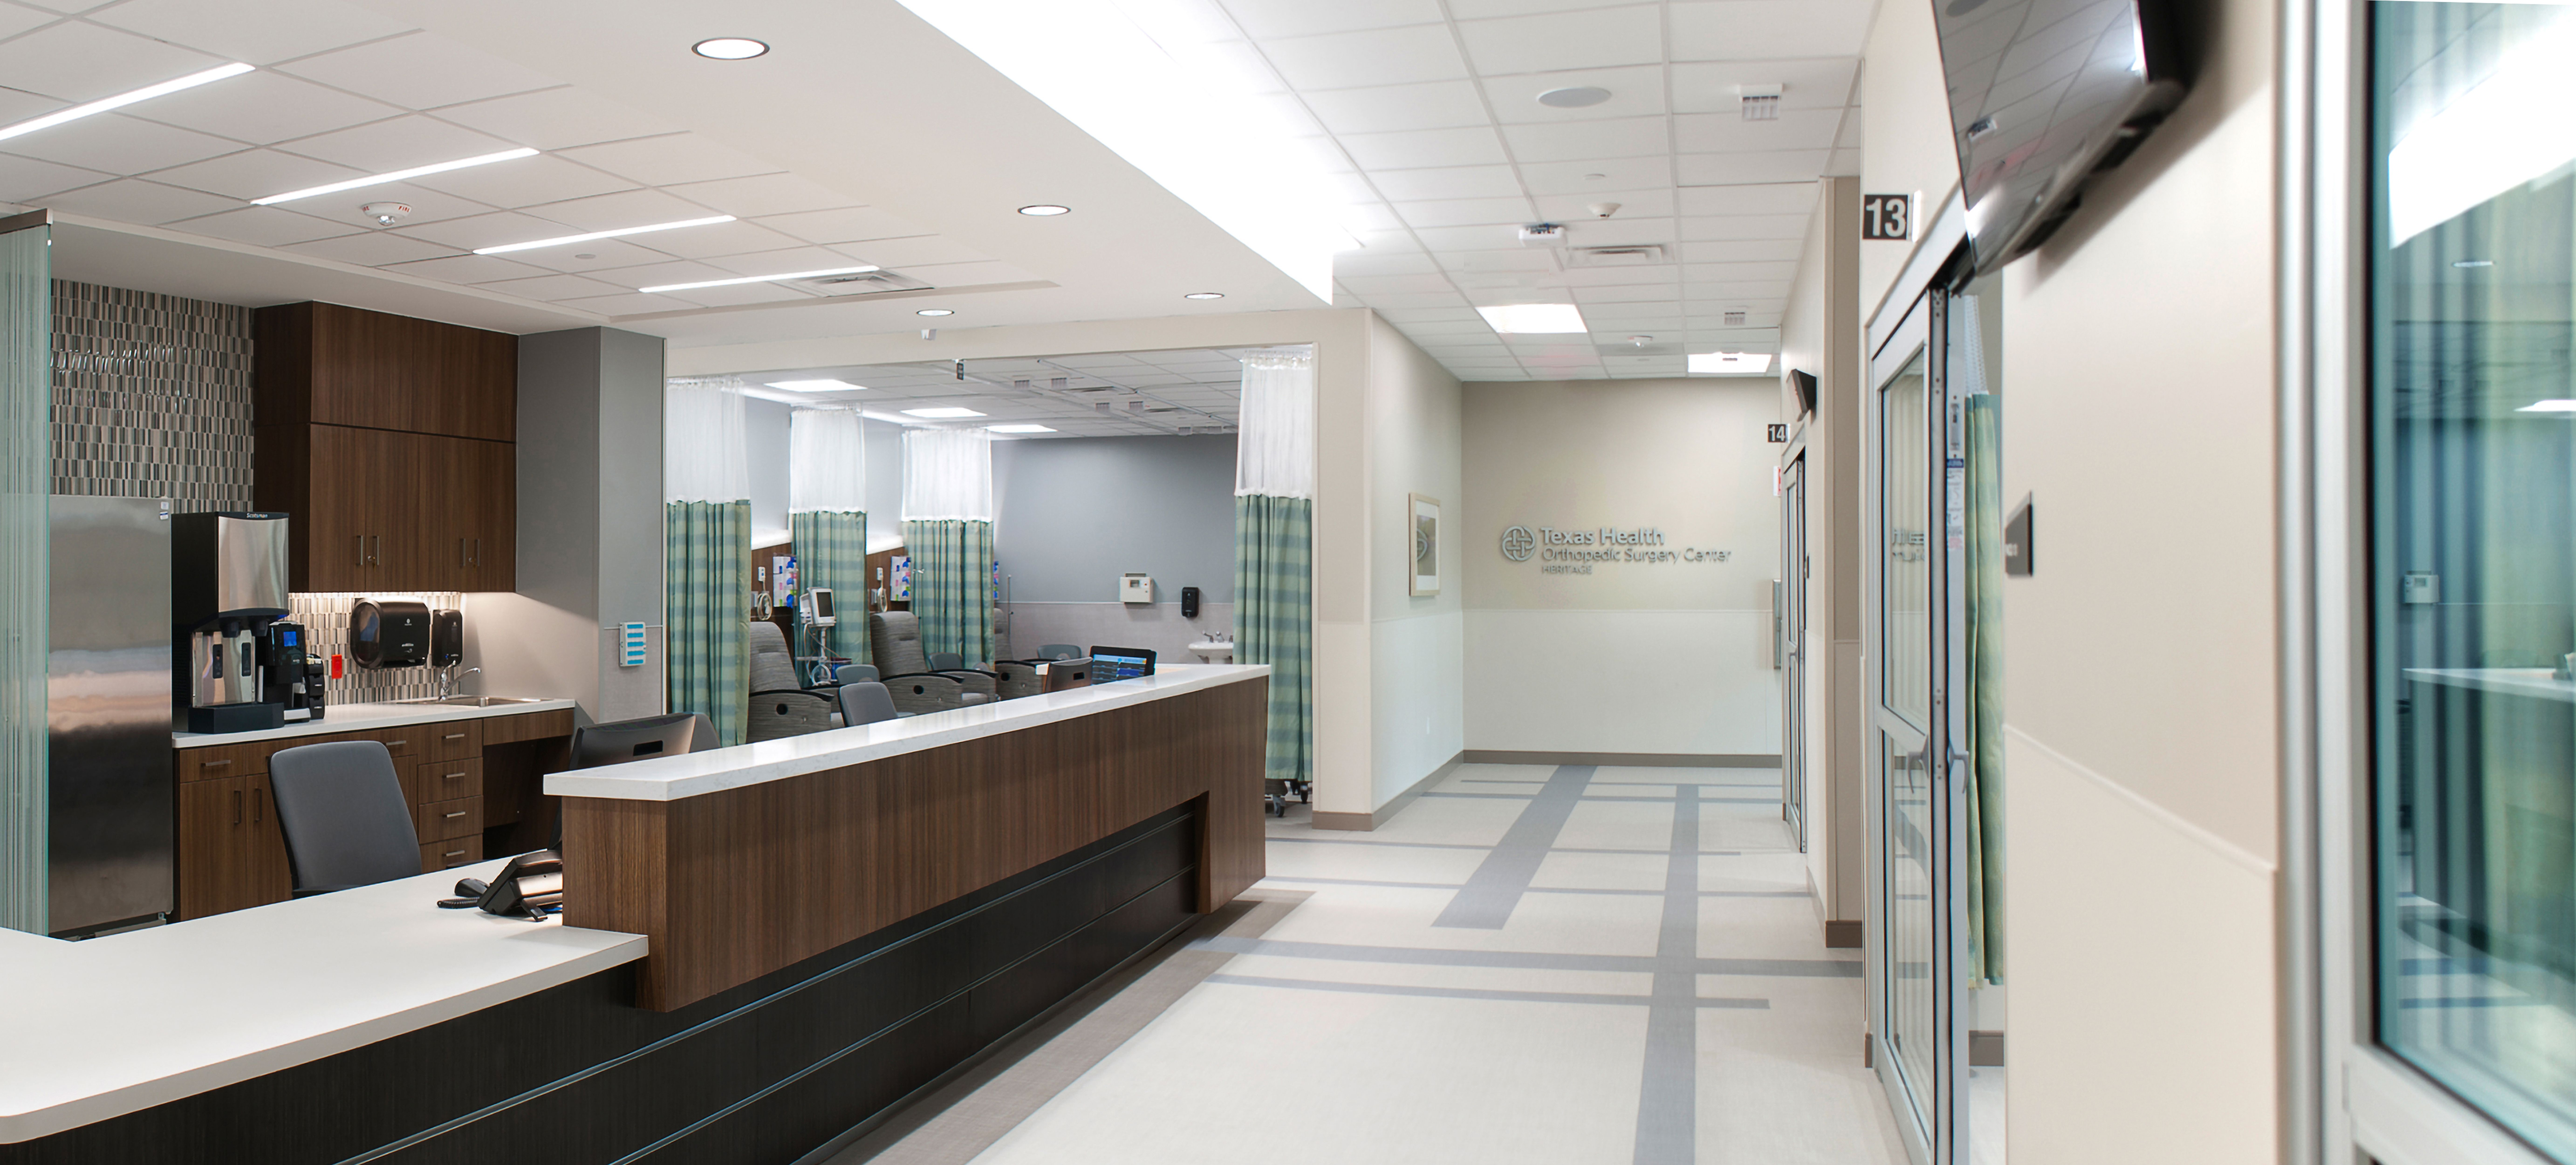 Texas Health Orthopedic Surgery Center Fort Worth Tx Is A